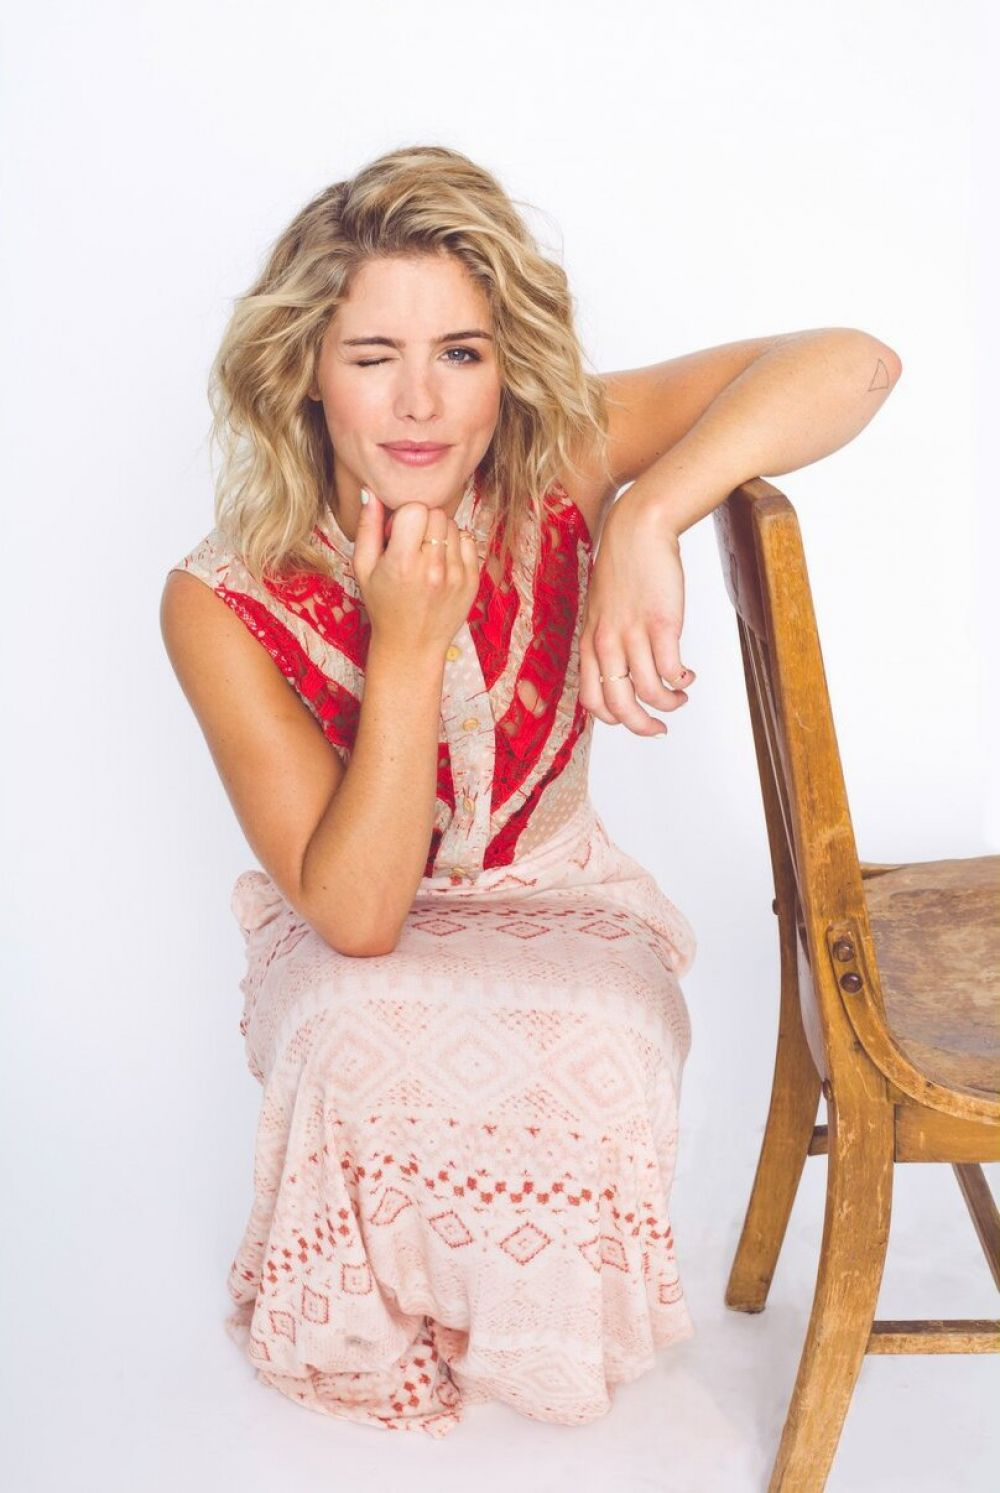 HQ Photos of Comedy Bang! Bang! Emily Bett Rickards in NKD Magazine September 2016 Issue